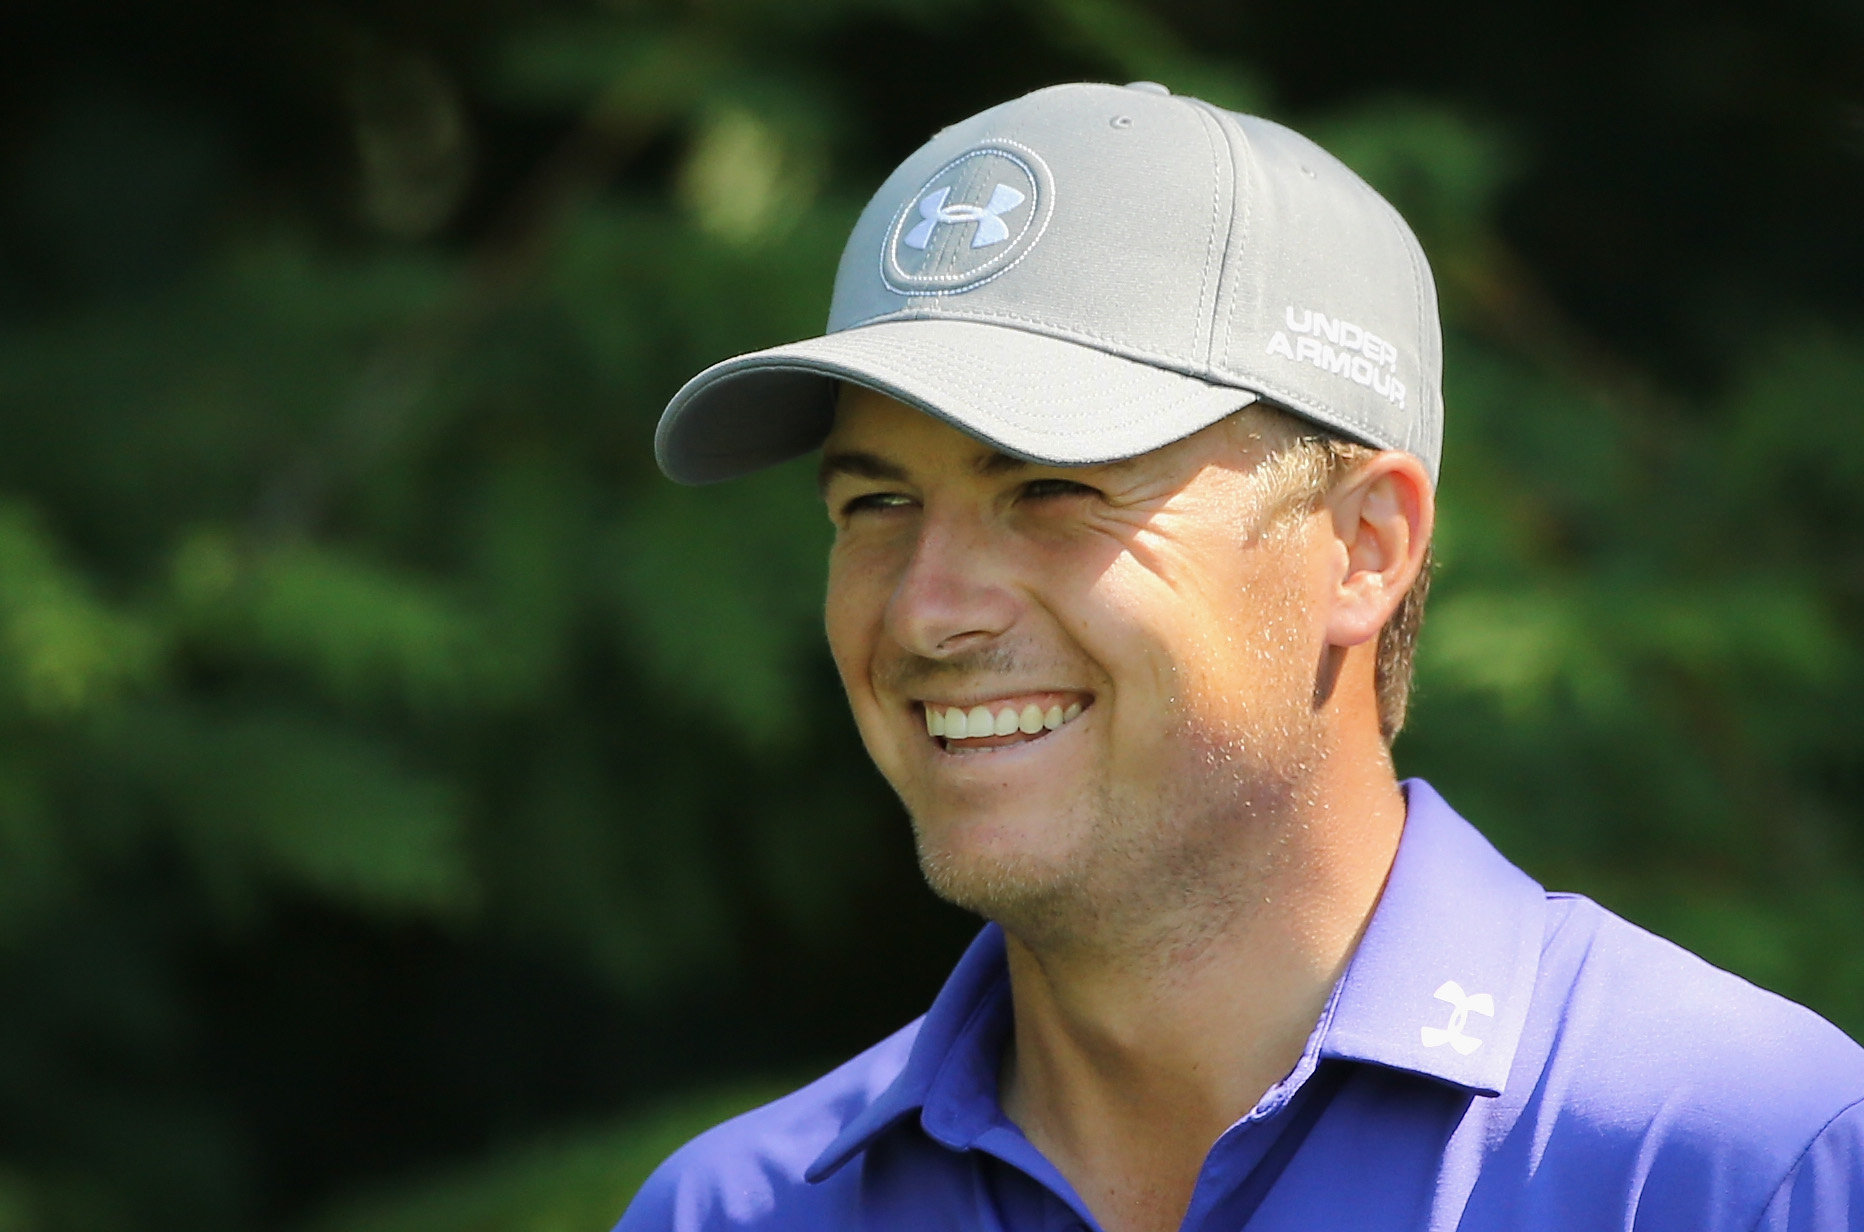 Jordan Spieth's Graciousness Took PGA Championship Winner Jason Day By Surprise